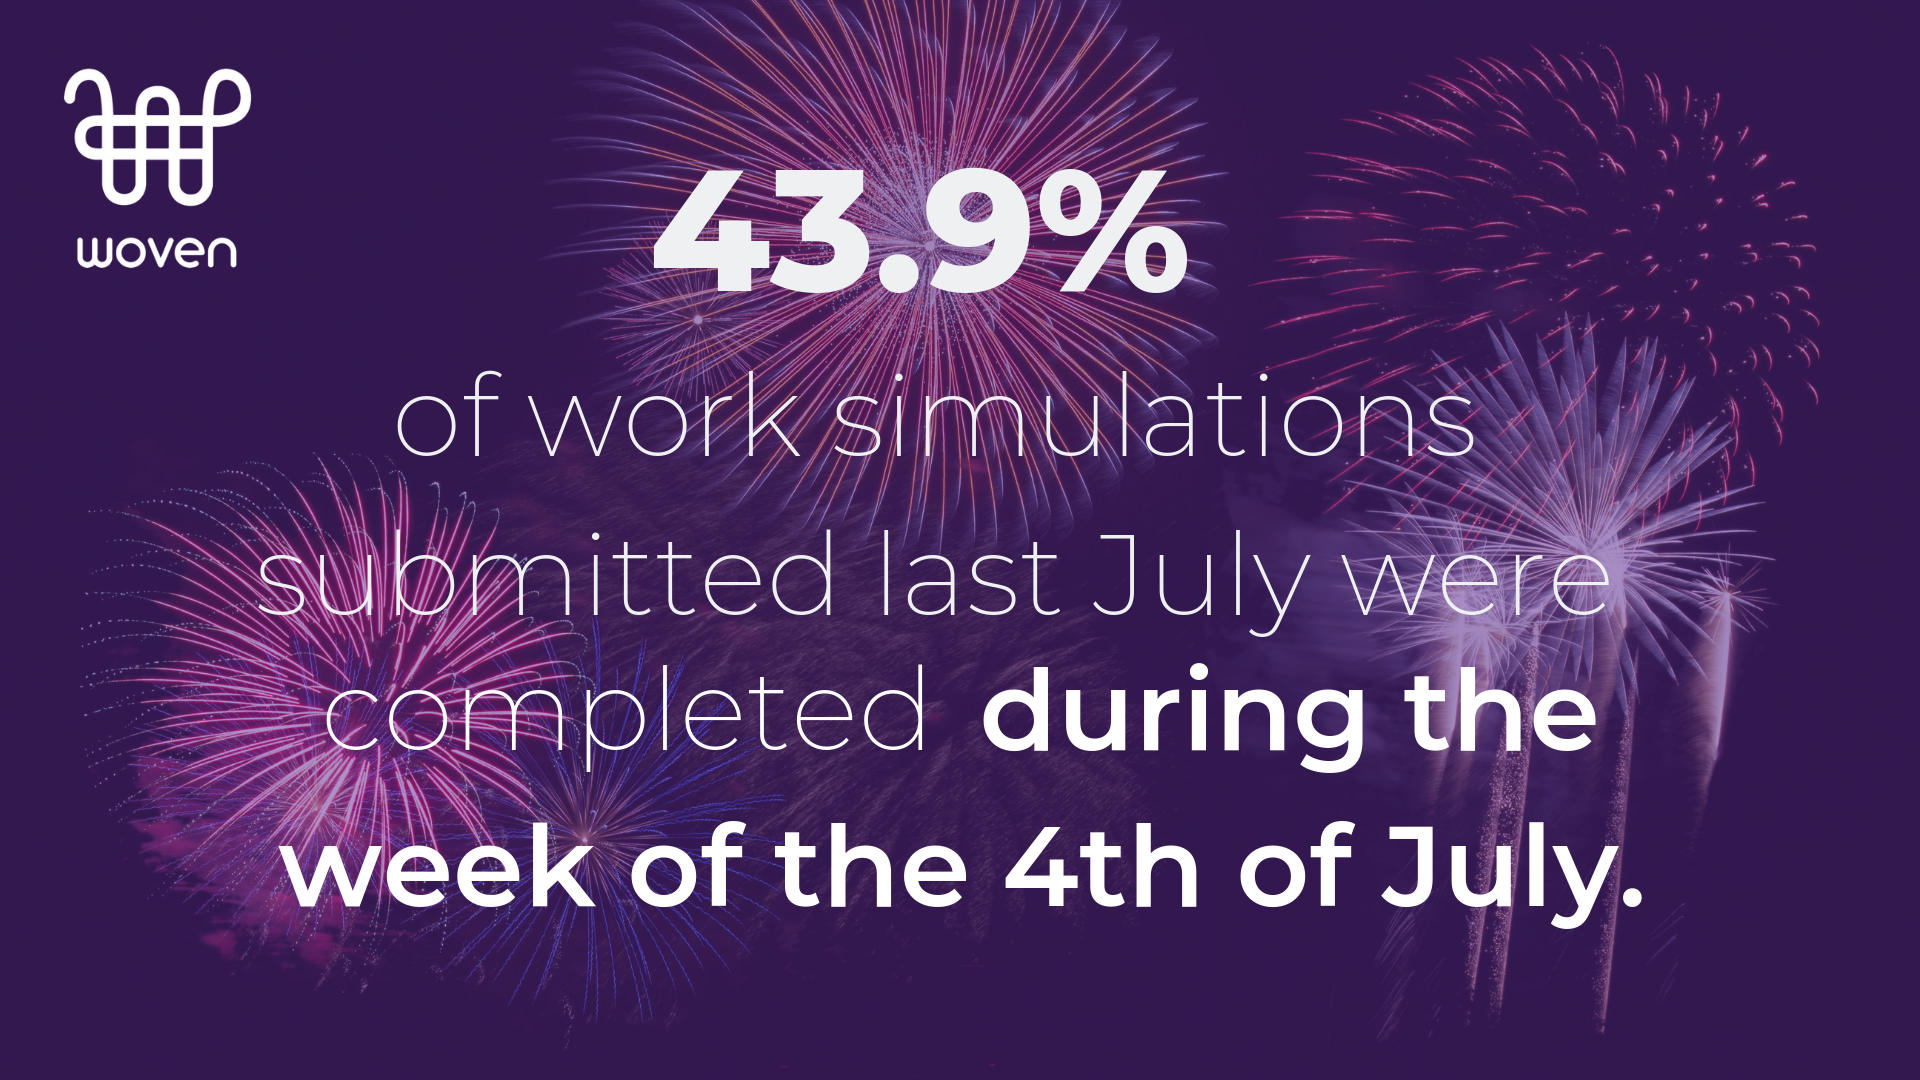 software-engineering-application-data-fourth-of-july